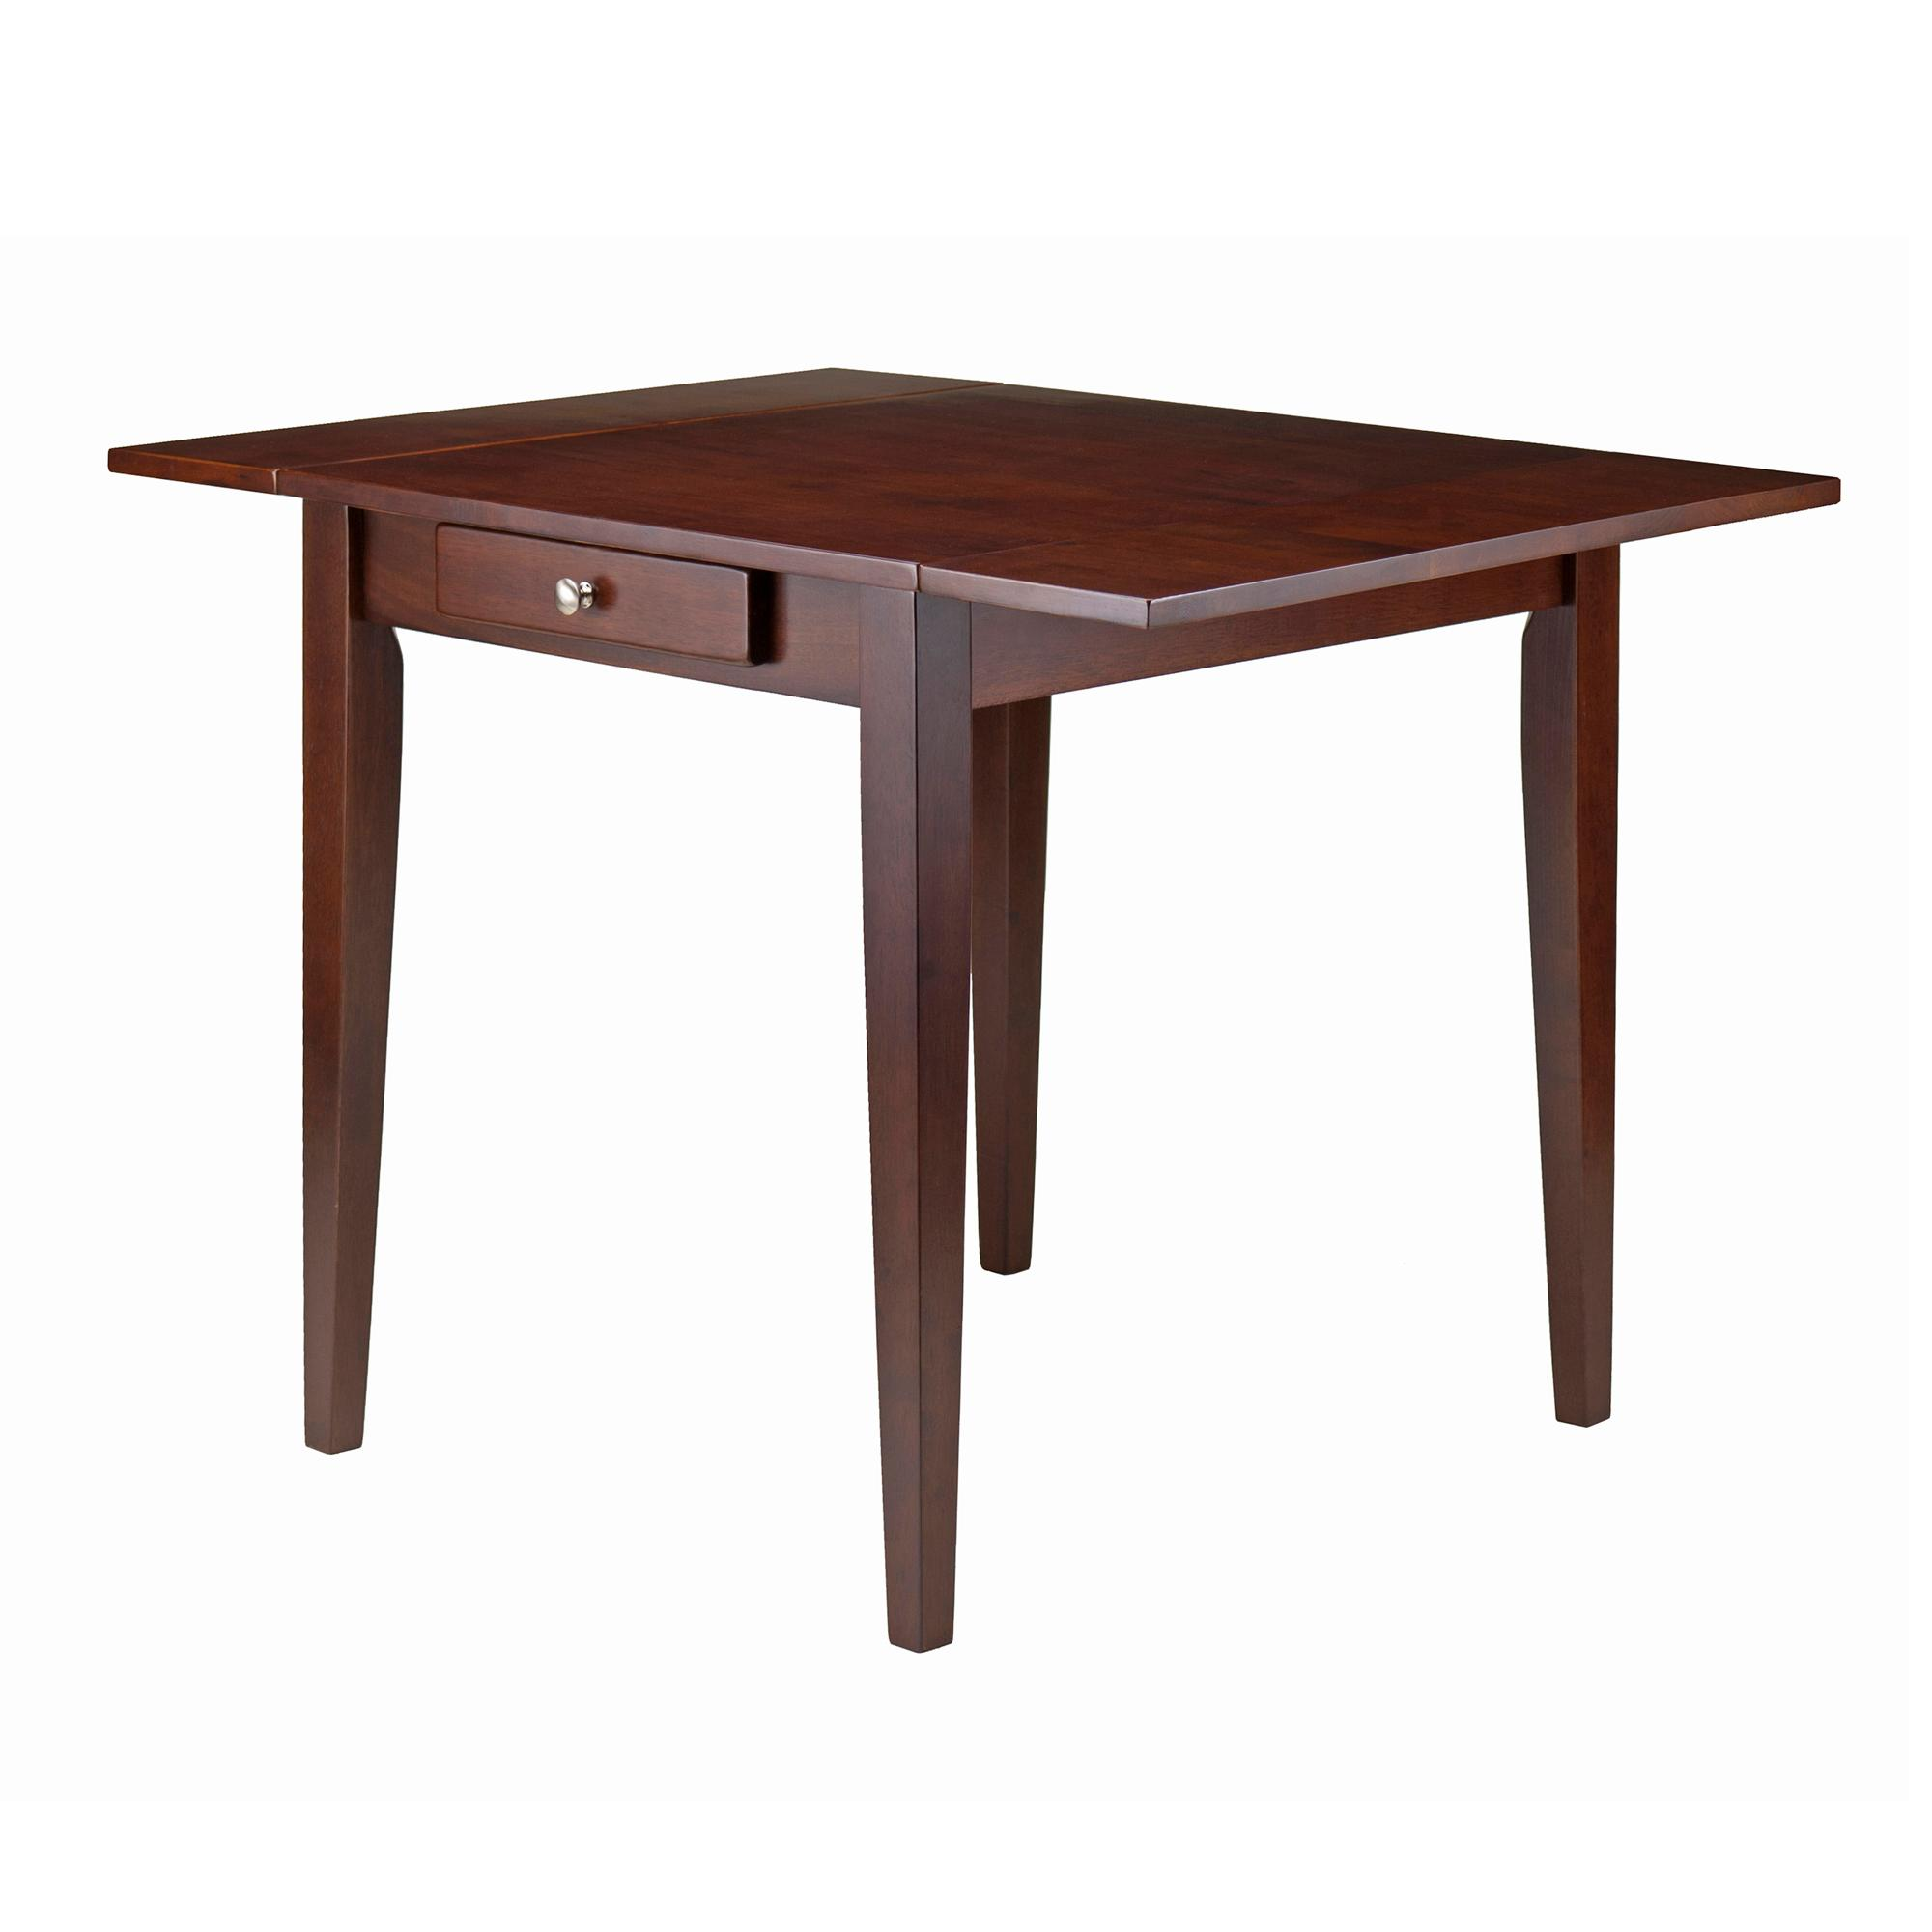 BQY drop leaf kitchen table Hamilton Double Drop Leaf Dining Table